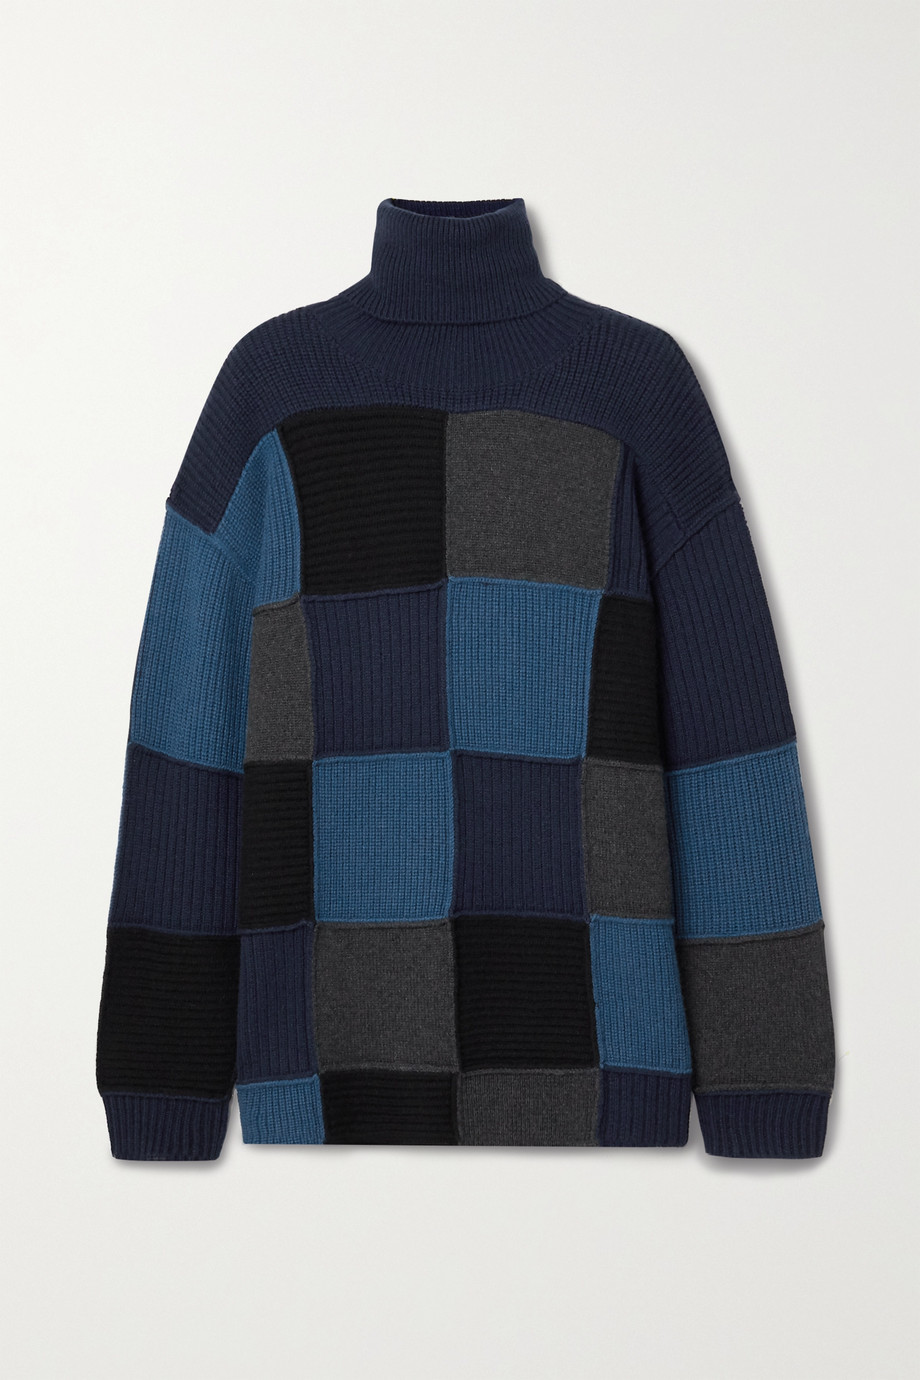 Givenchy Oversized-Rollkragenpullover aus Kaschmir in Patchwork-Optik